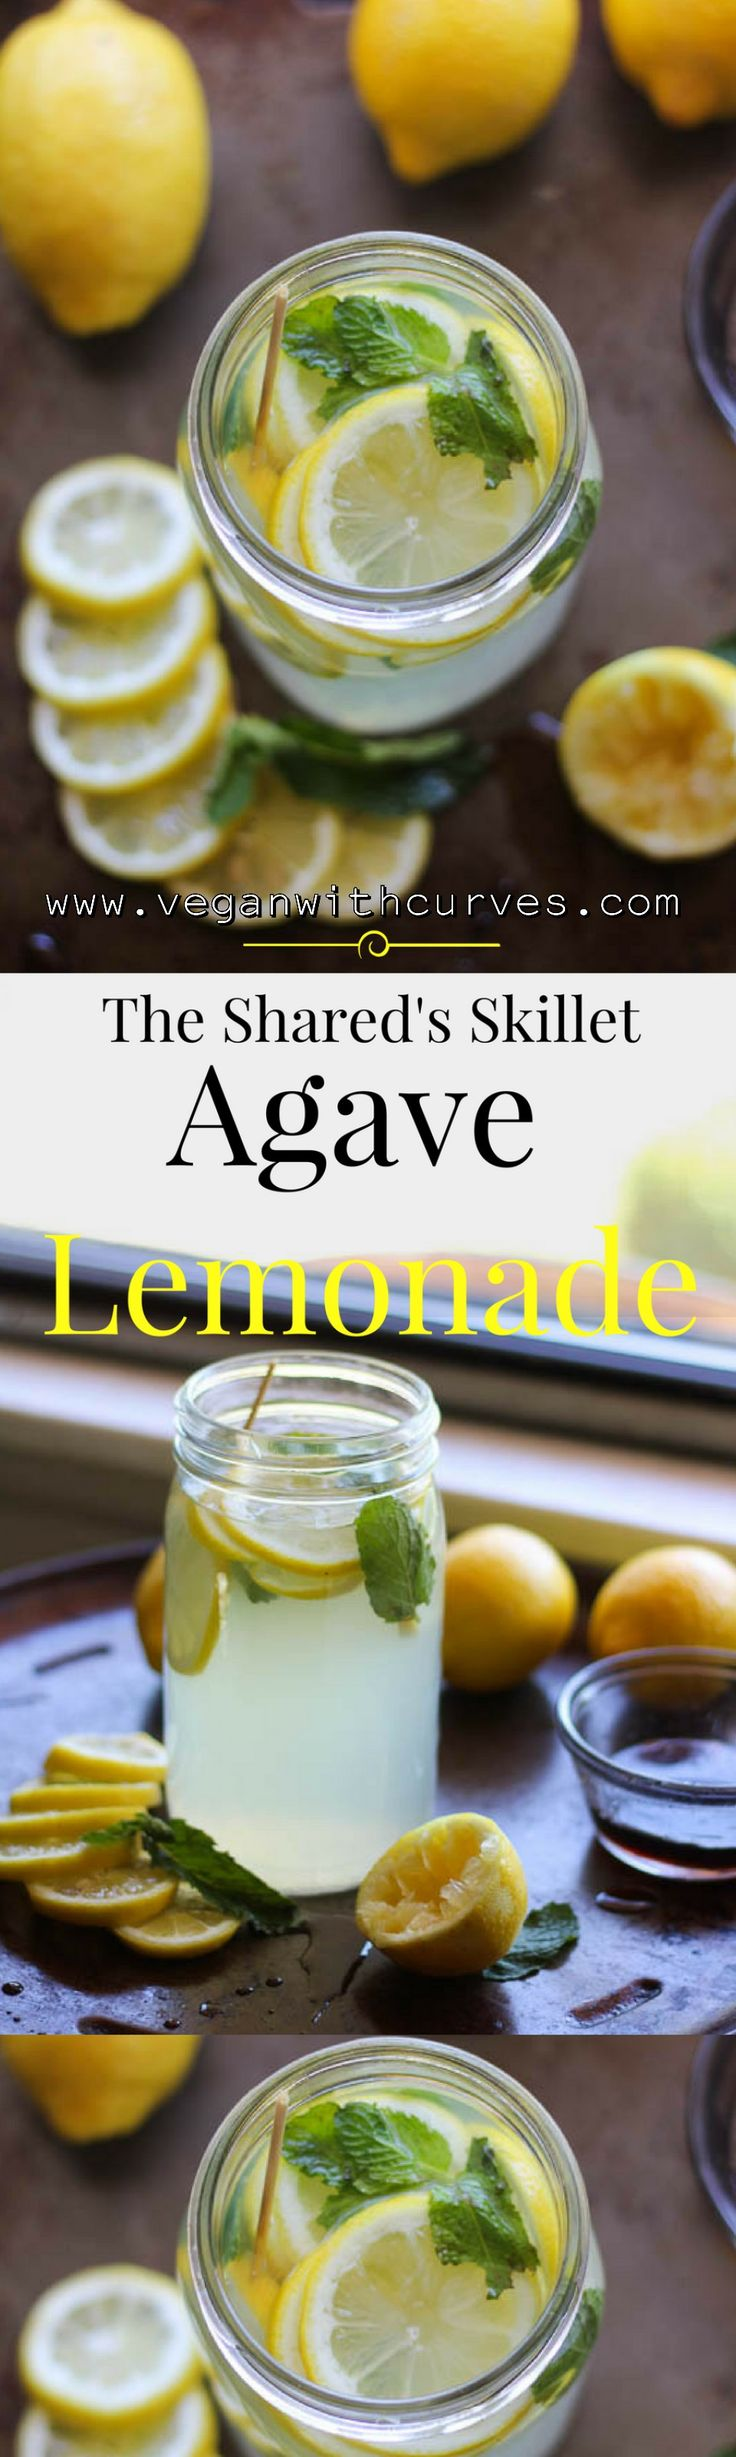 Summer is officially here. Simple lemonade recipe made with the natural healthy sweetener Agave Nectar.